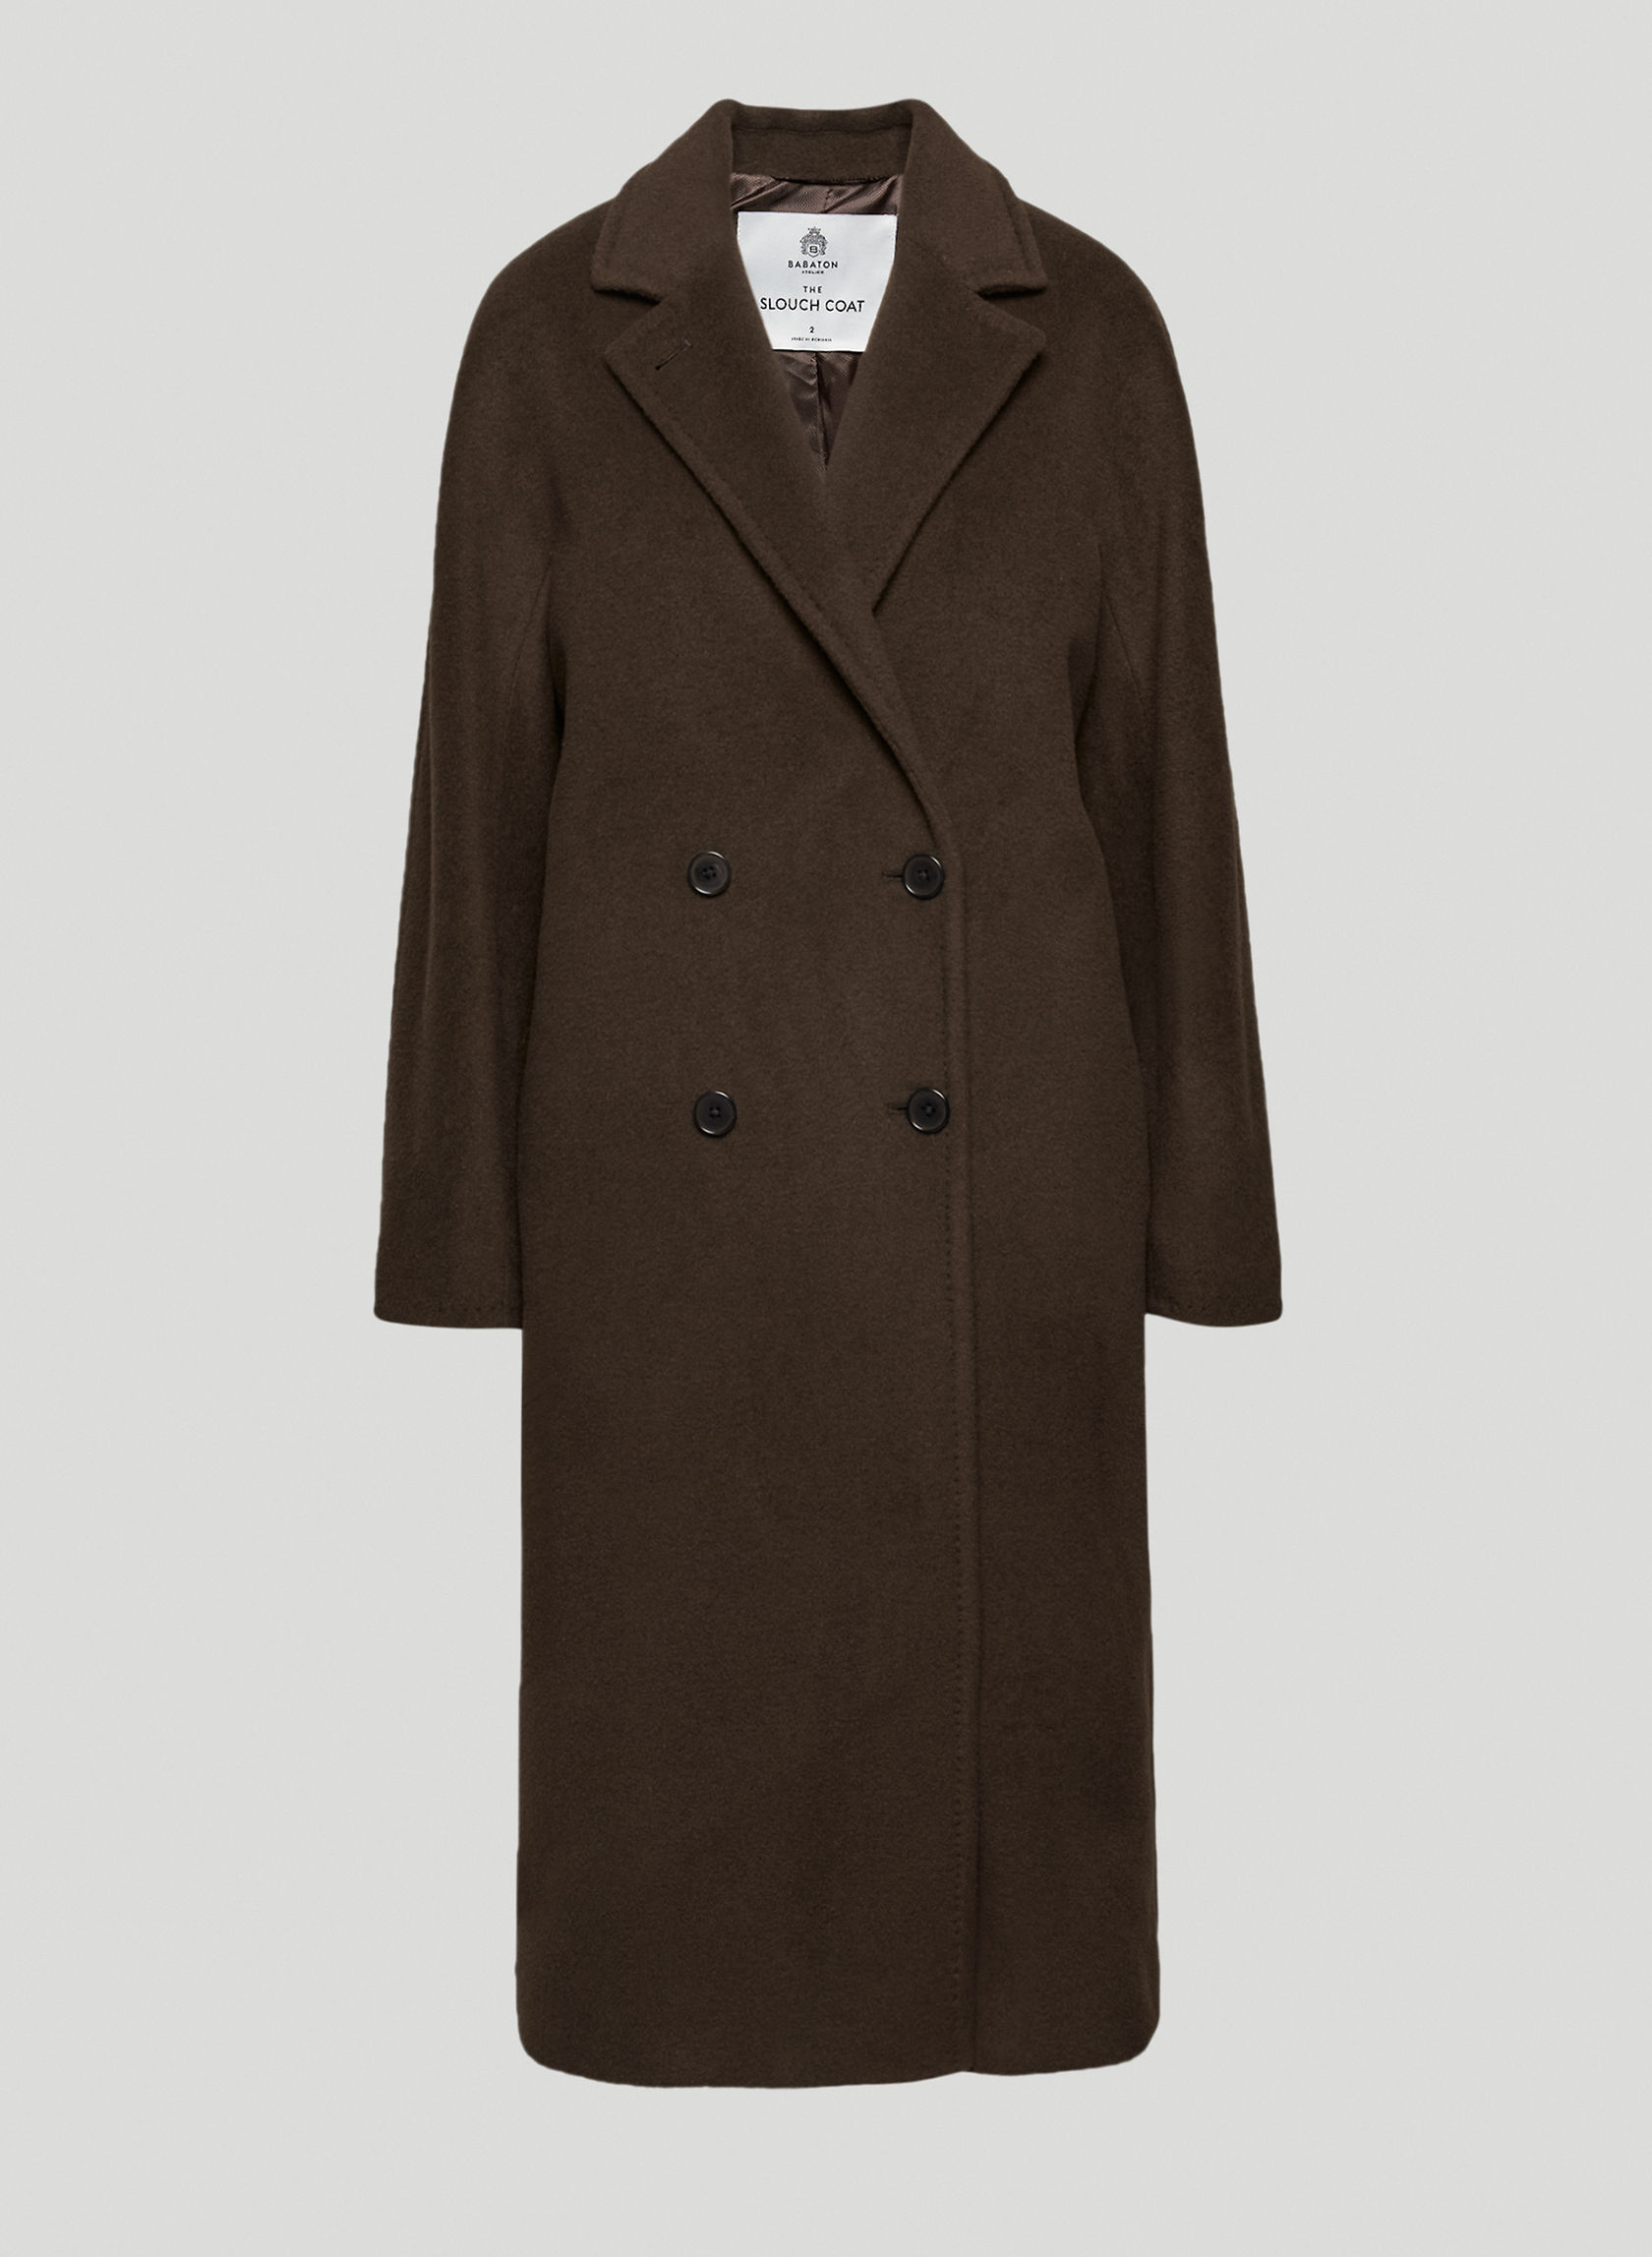 The Slouch Coat